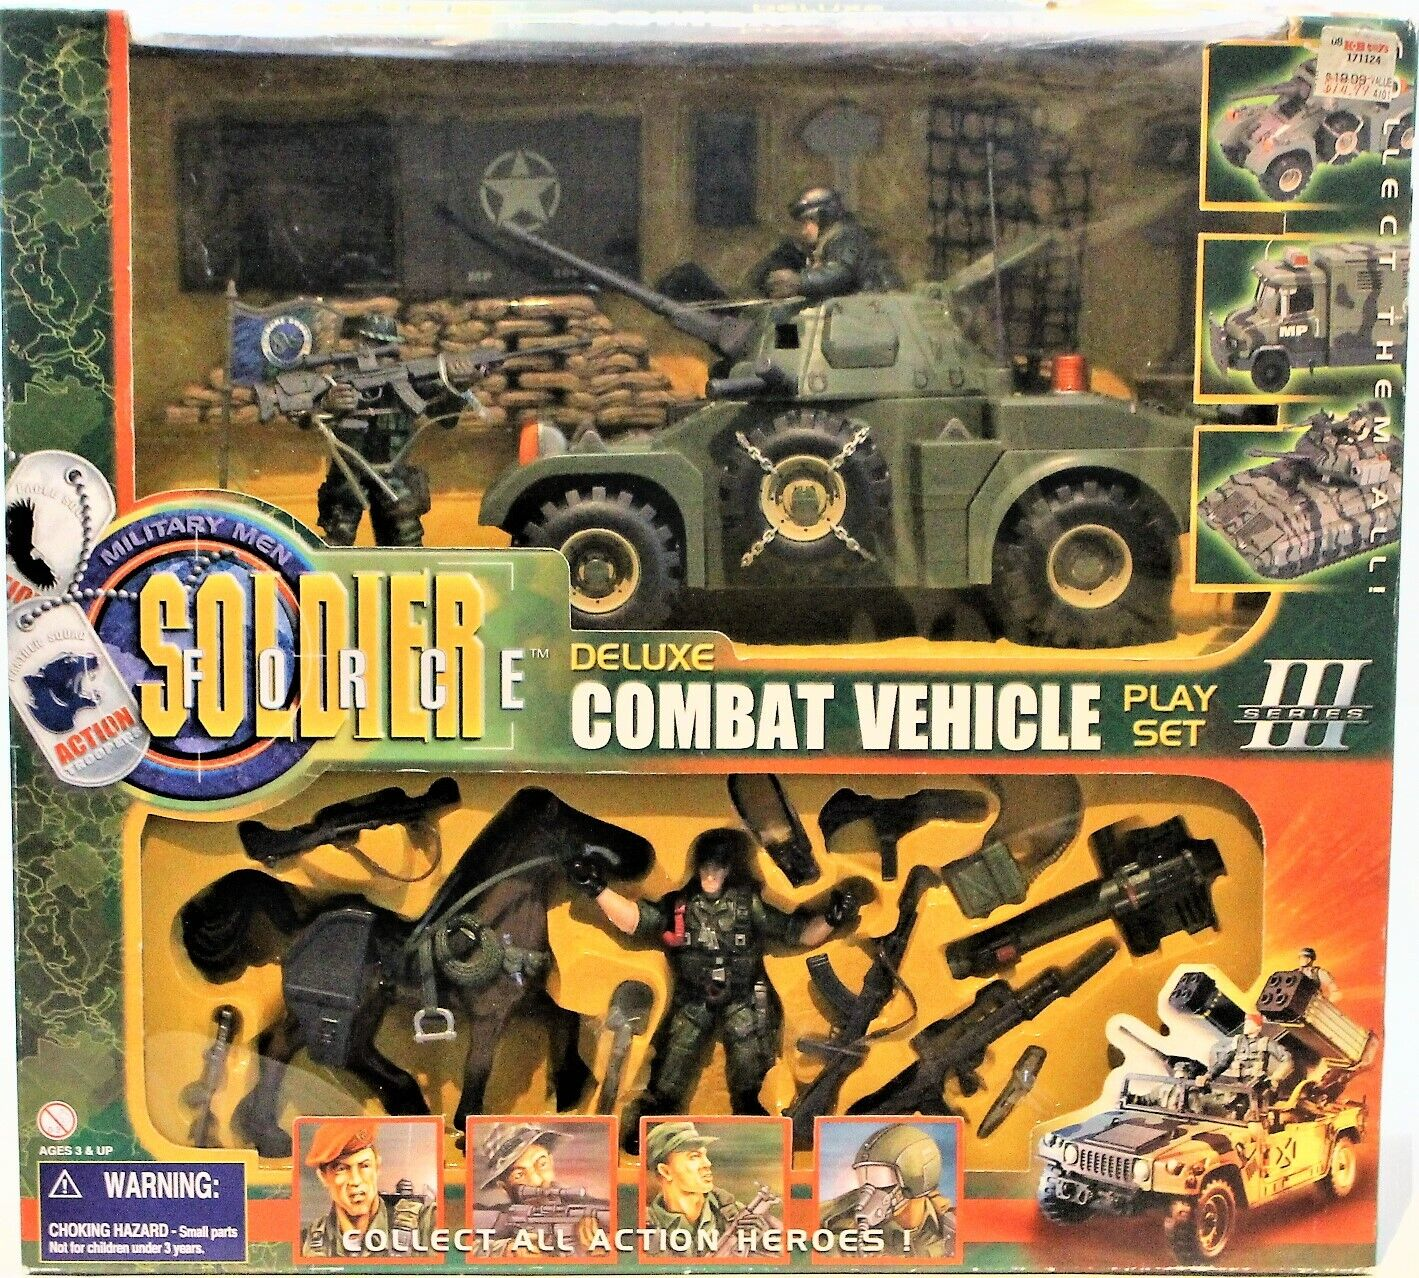 Soldier Force Deluxe Combat Vehicle Playset Series lll Tank & azione cifras